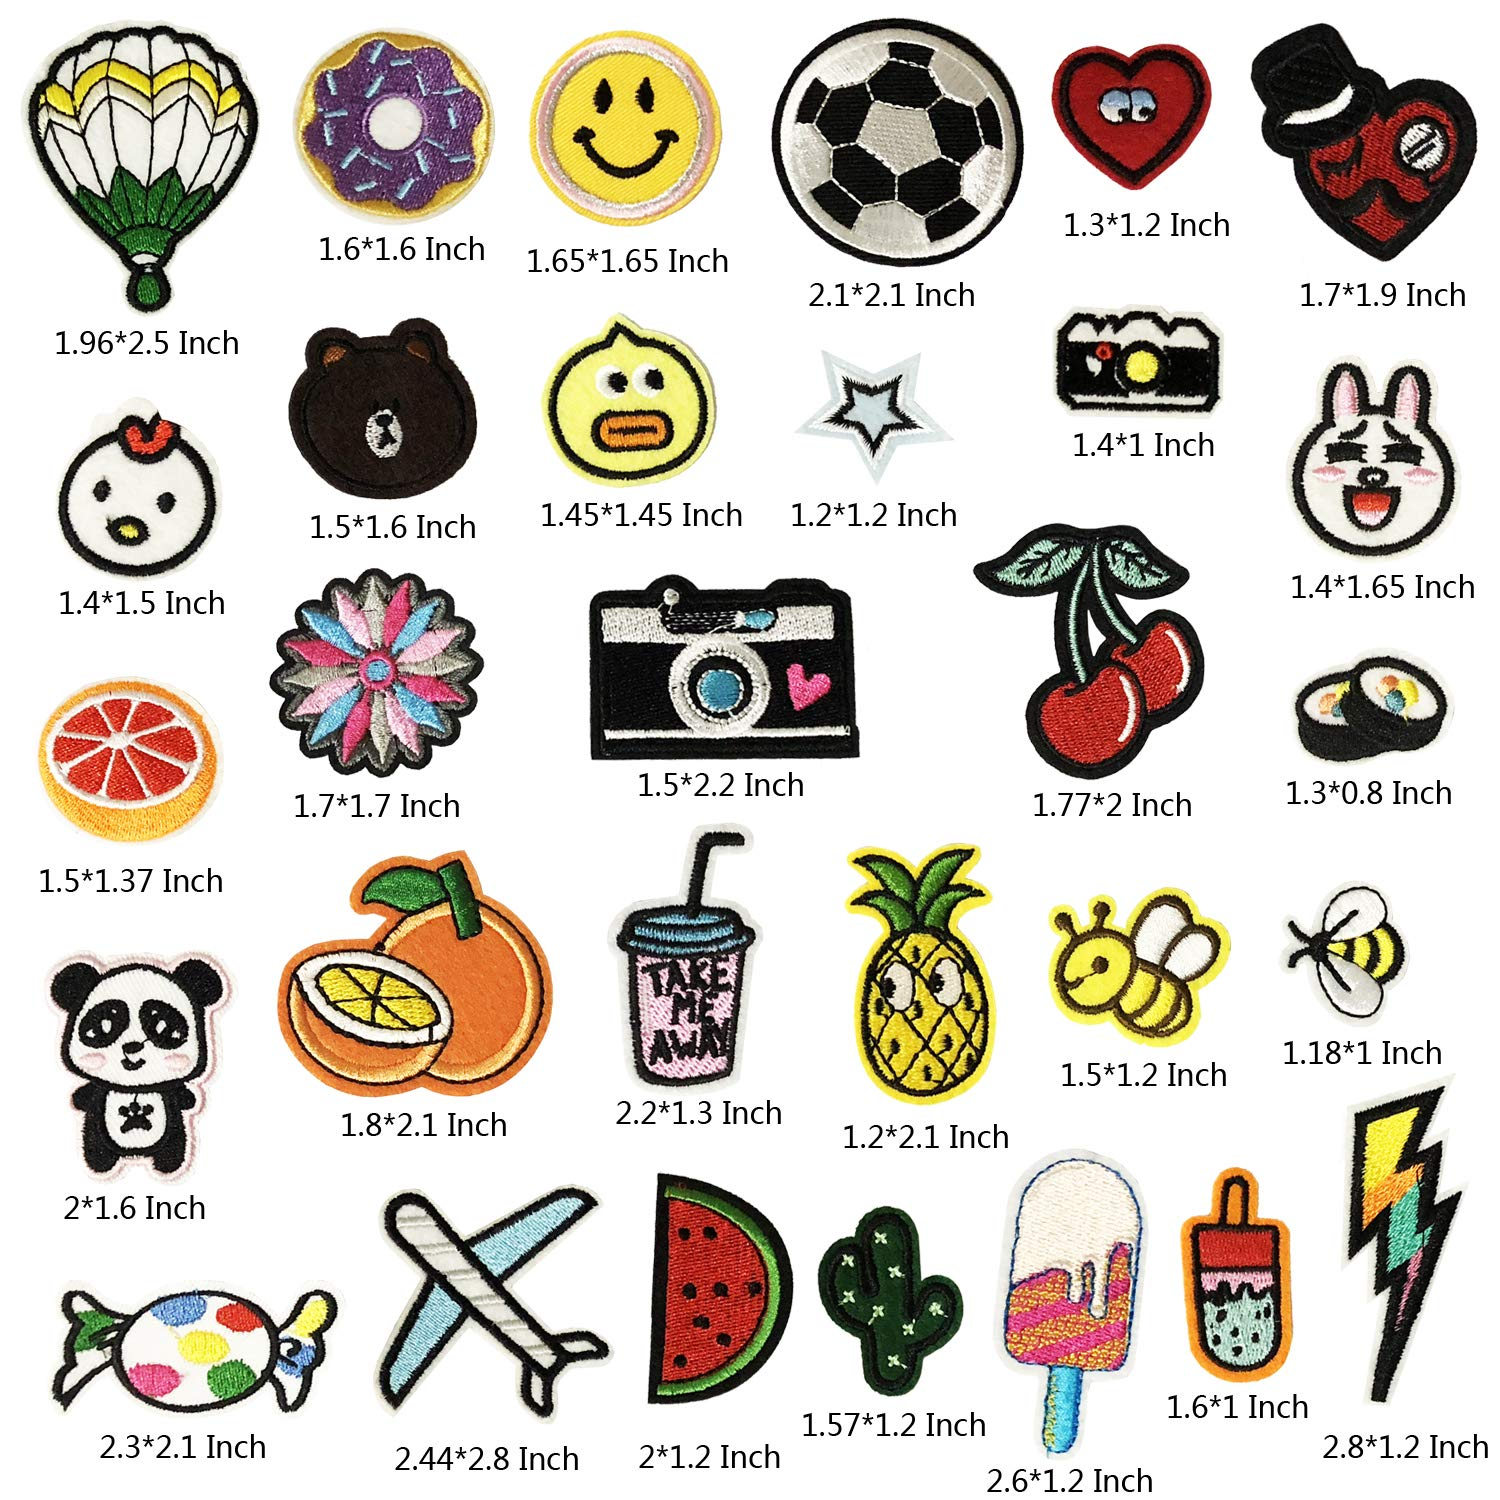 B Style 30PCS Iron On Patches Embroidered Appliques DIY Decoration or Repair,Sew On Patches for Clothing Backpacks Jeans Caps Shoes etc